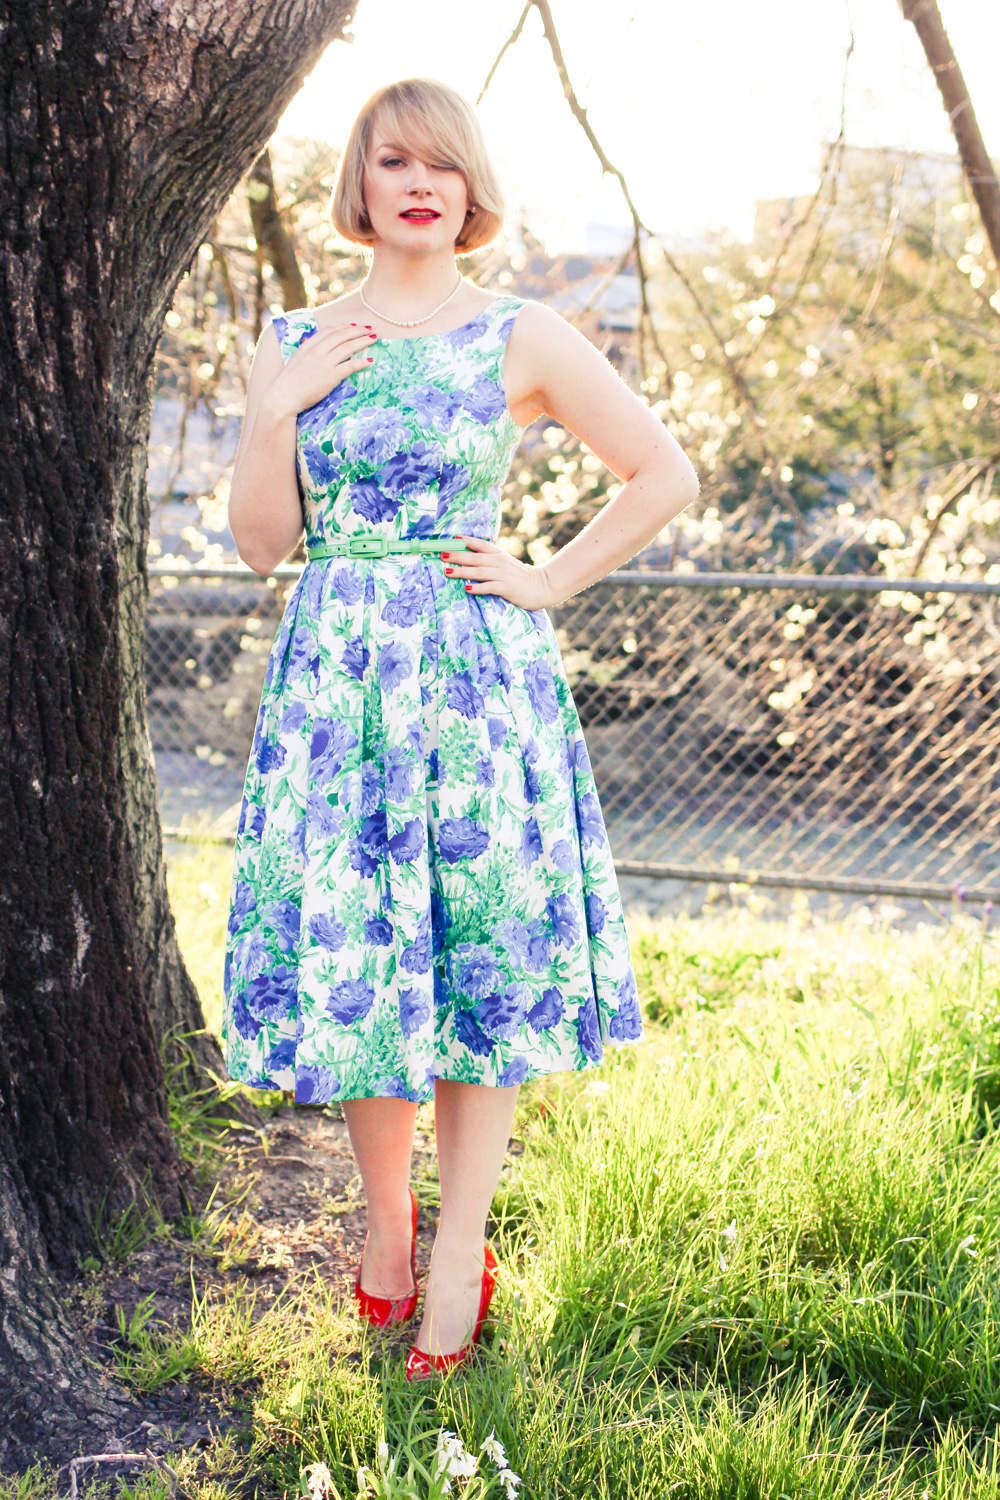 @findingfemme wears blue and green floral dress.